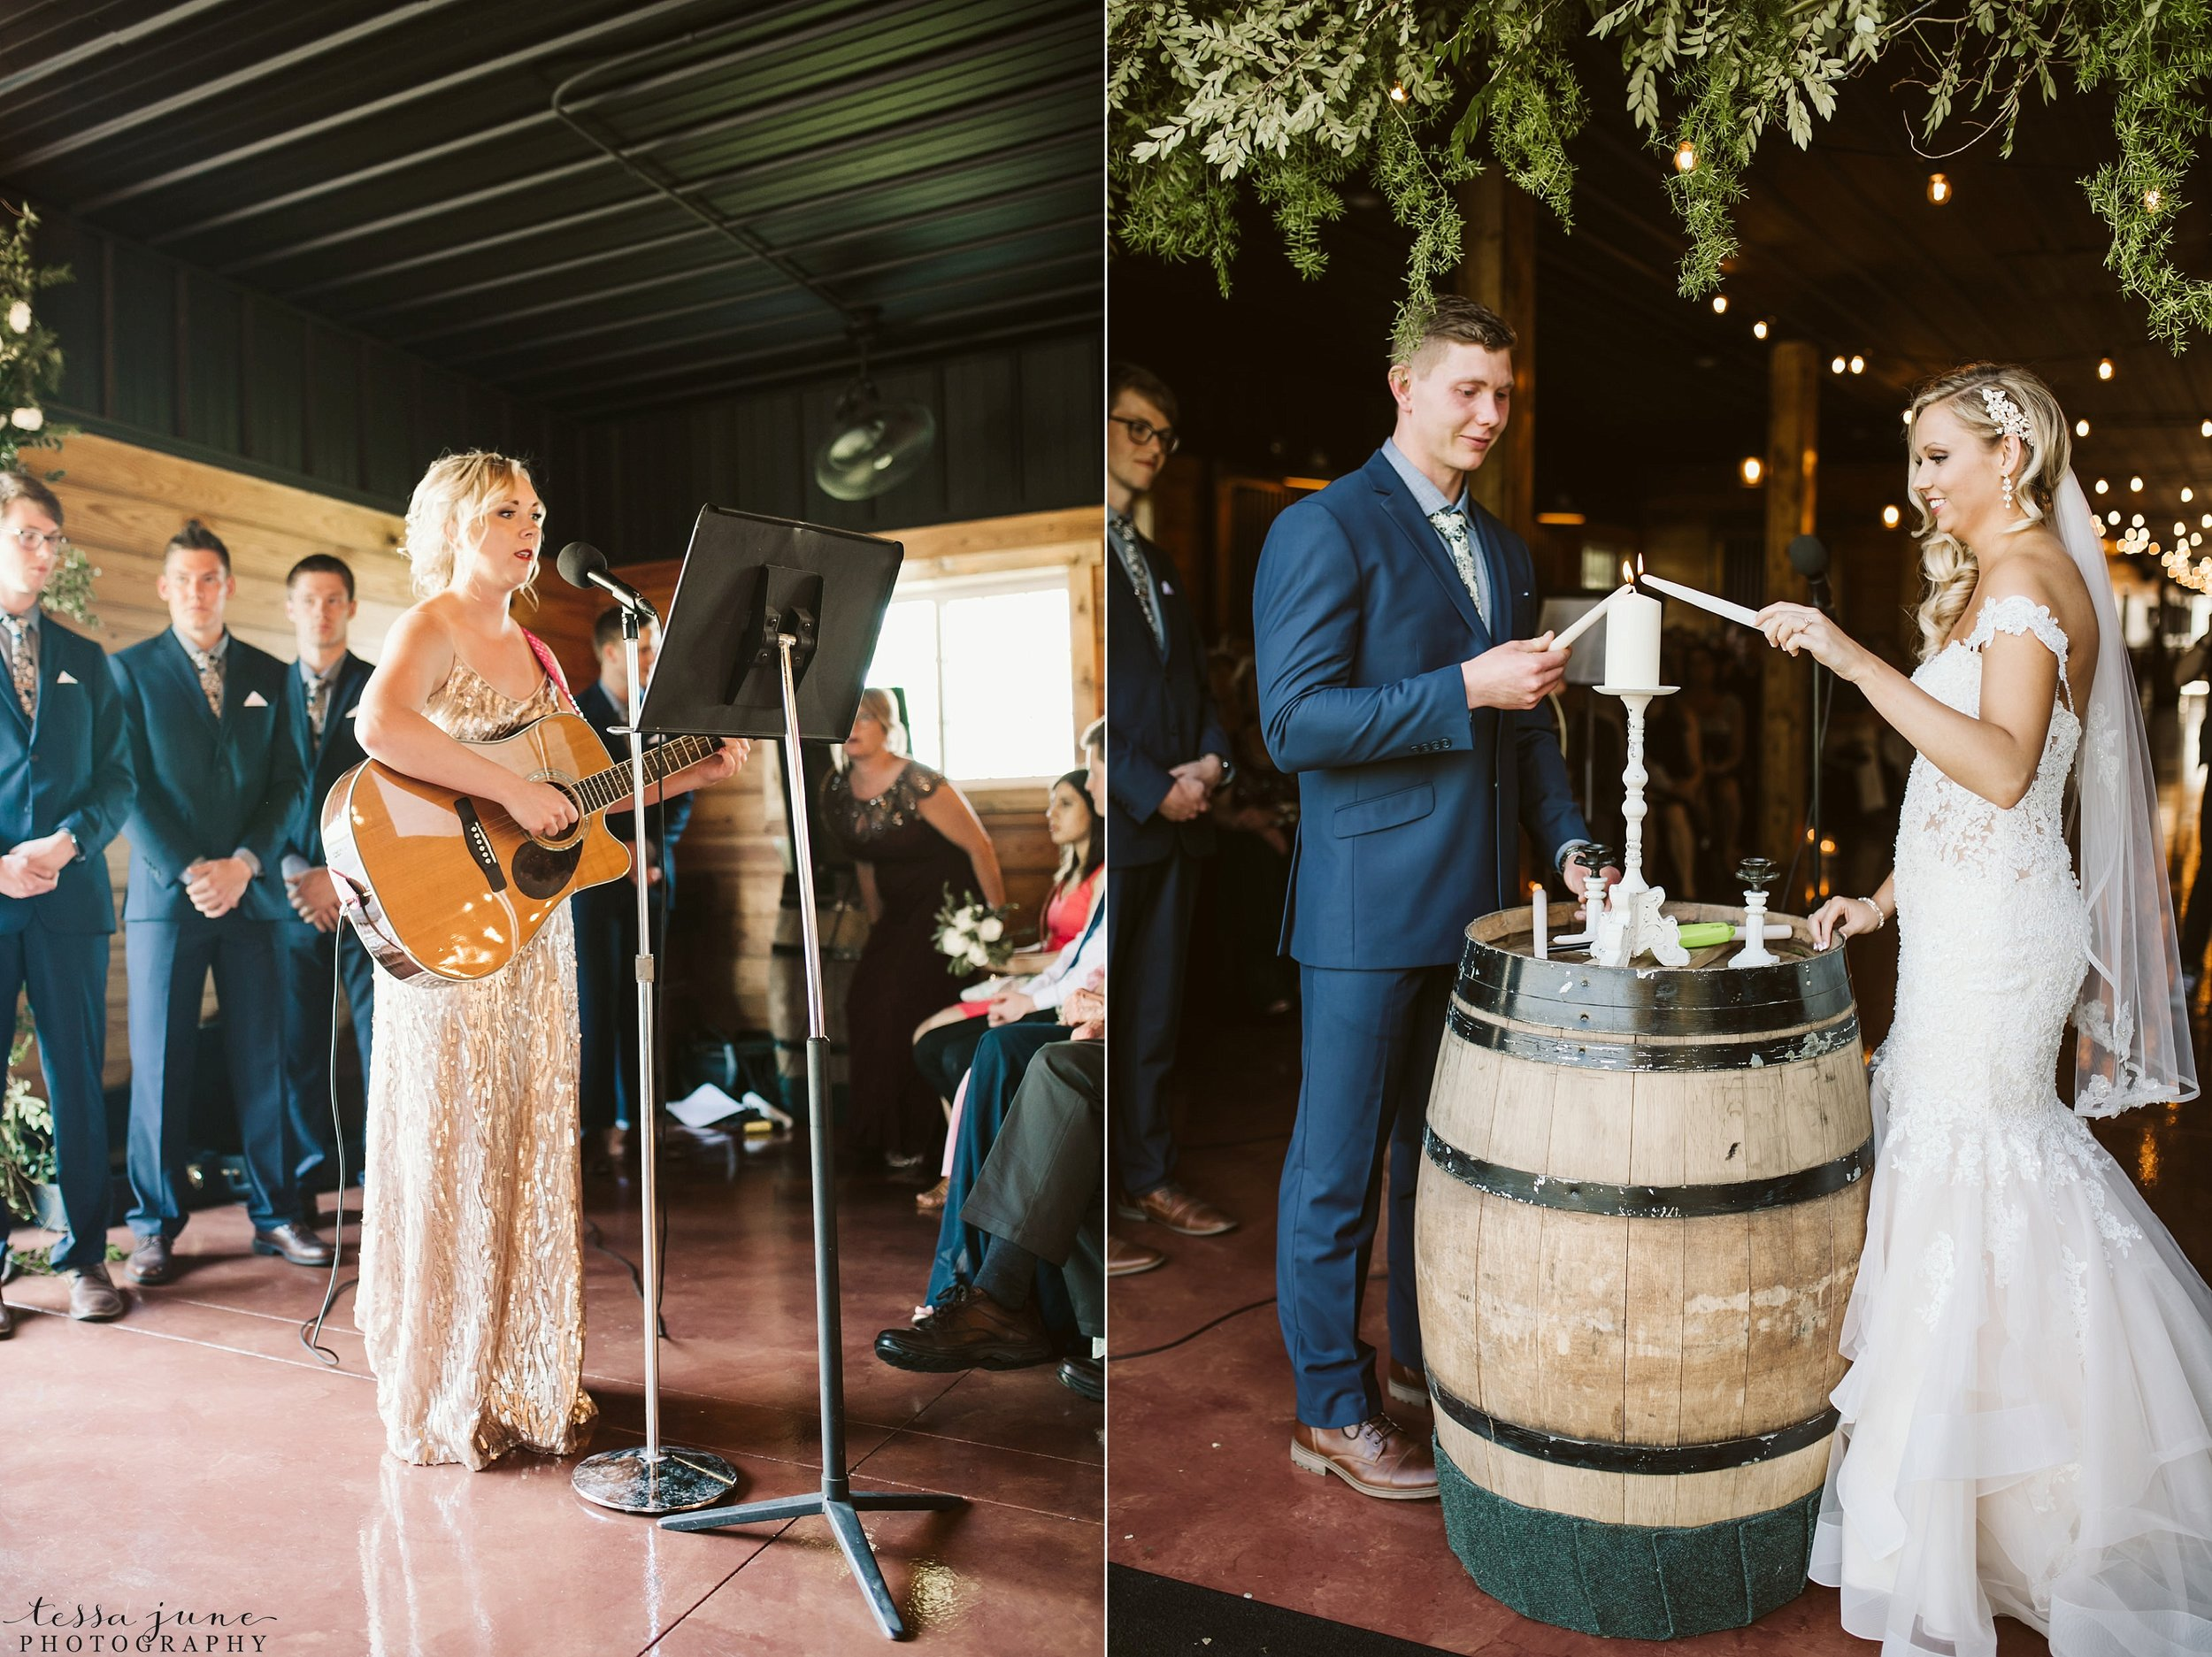 carlos-creek-winery-wedding-alexandria-minnesota-glam-elegant-floral-108.jpg